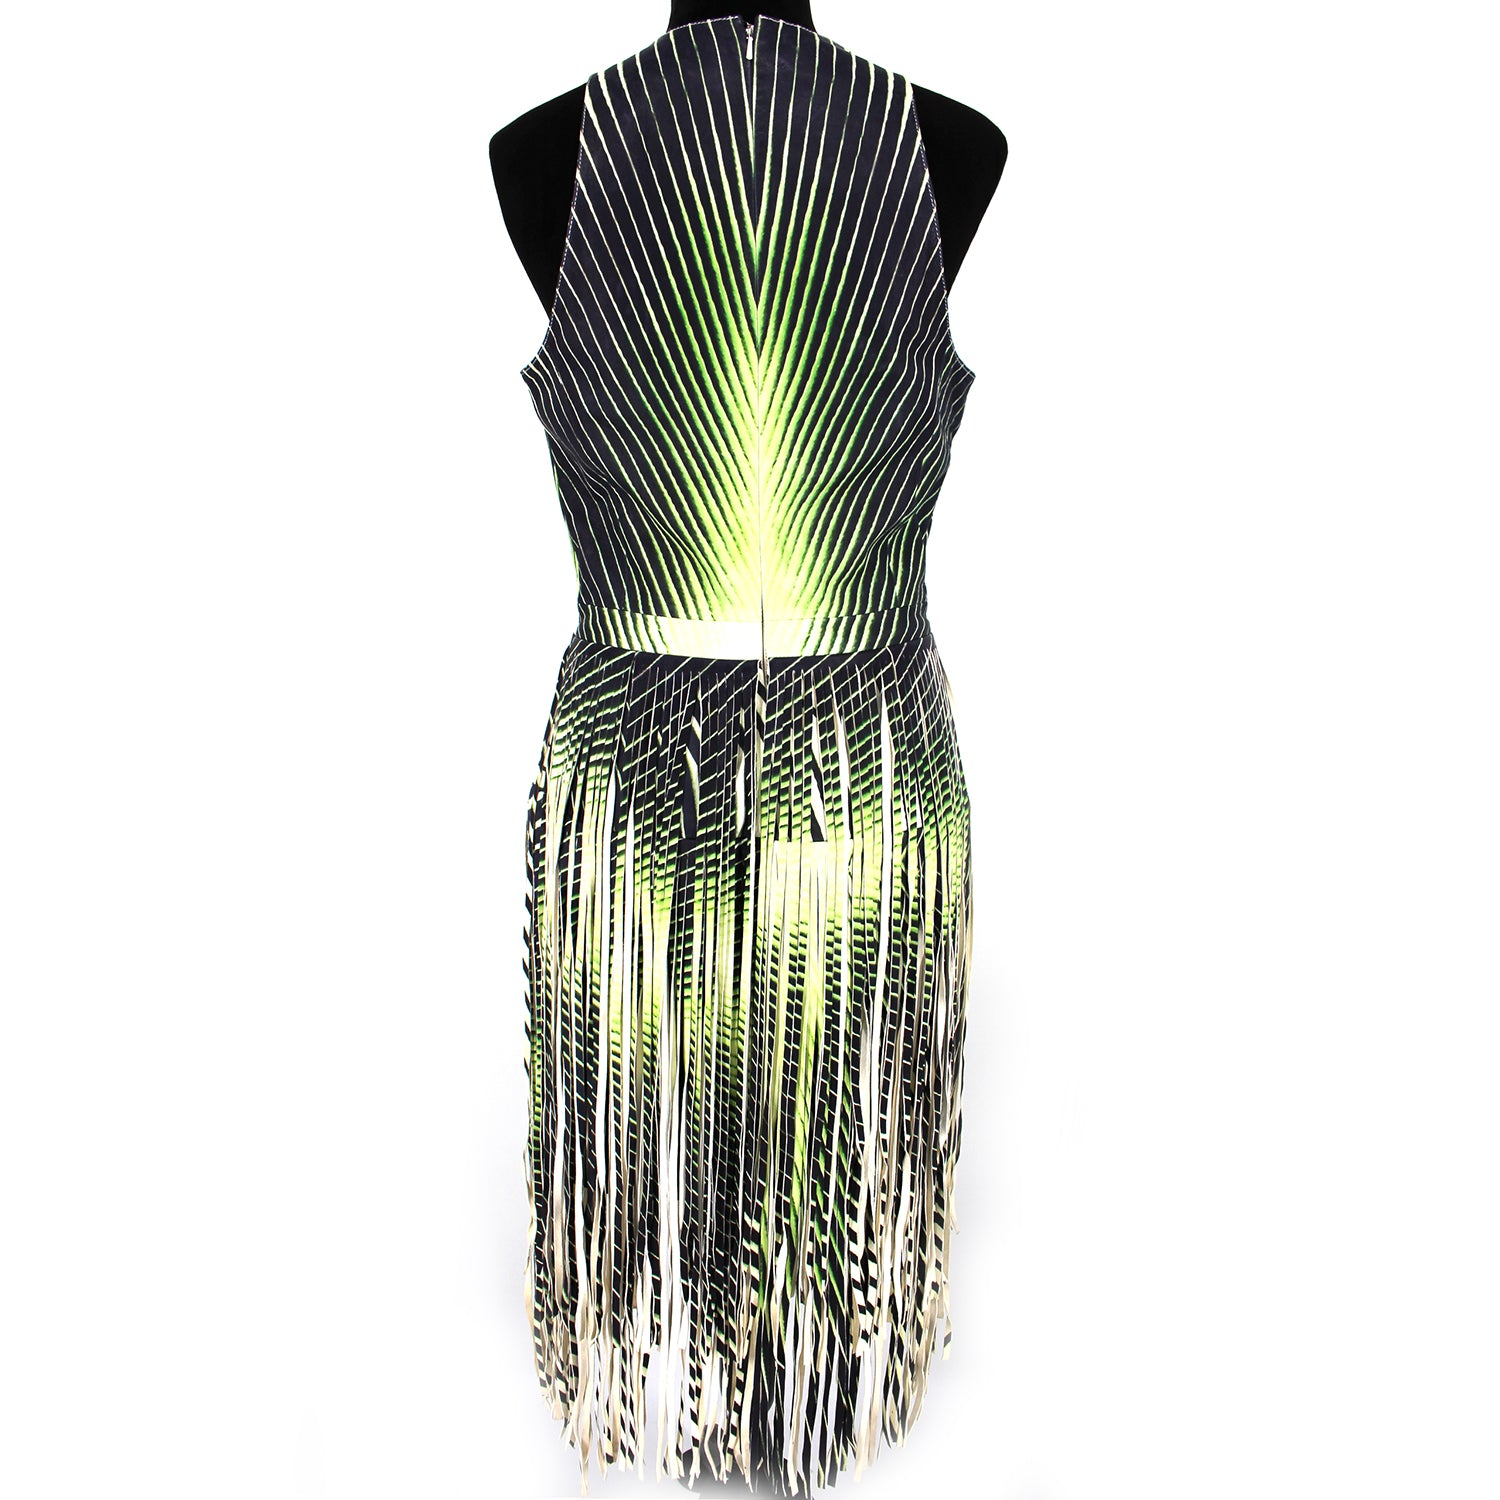 Tamara Mellon Lambskin Fringe Dress